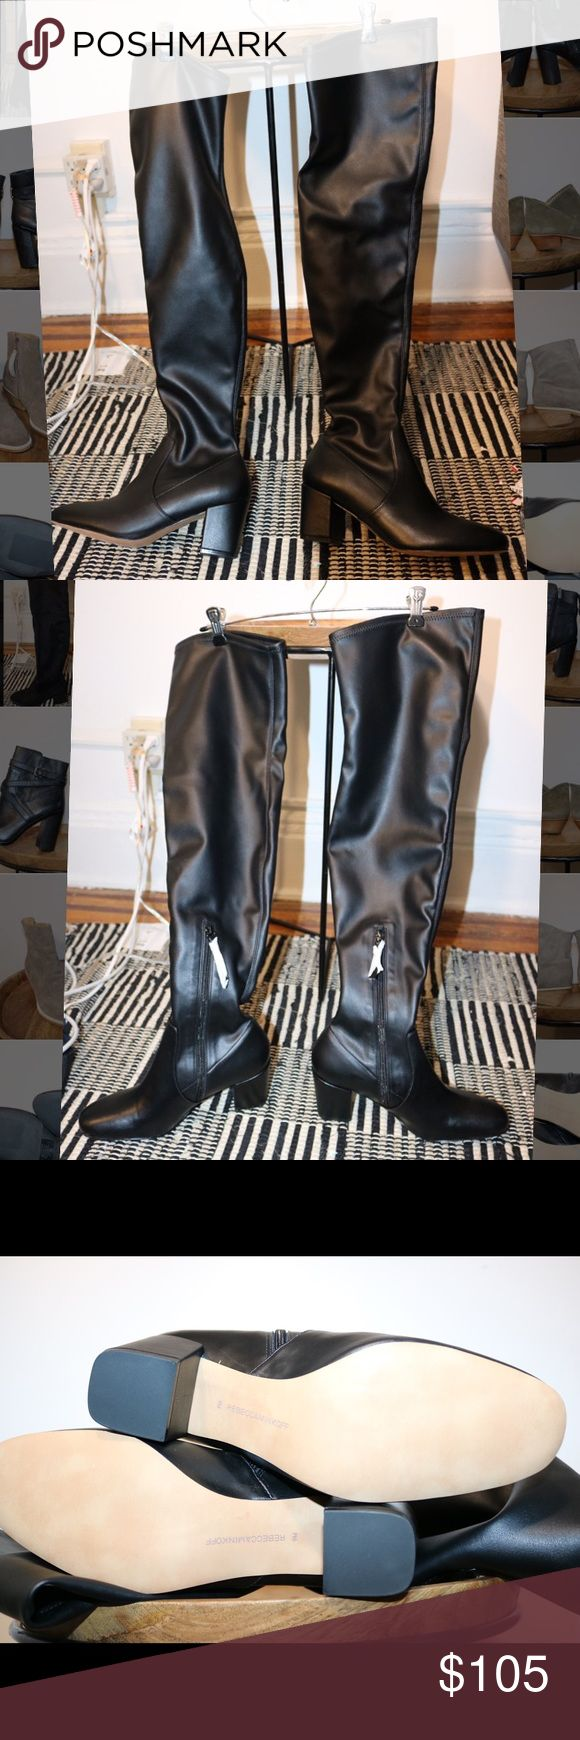 NWOT Rebecca Minkoff Faux Leather Over the Knee Brand new. Never worn outside of the store. Please note photos were taken with a high resolution camera so things that may look like flaws are just lighting and resolution. I disclose all issues within the item description. Rebecca Minkoff Shoes Over the Knee Boots